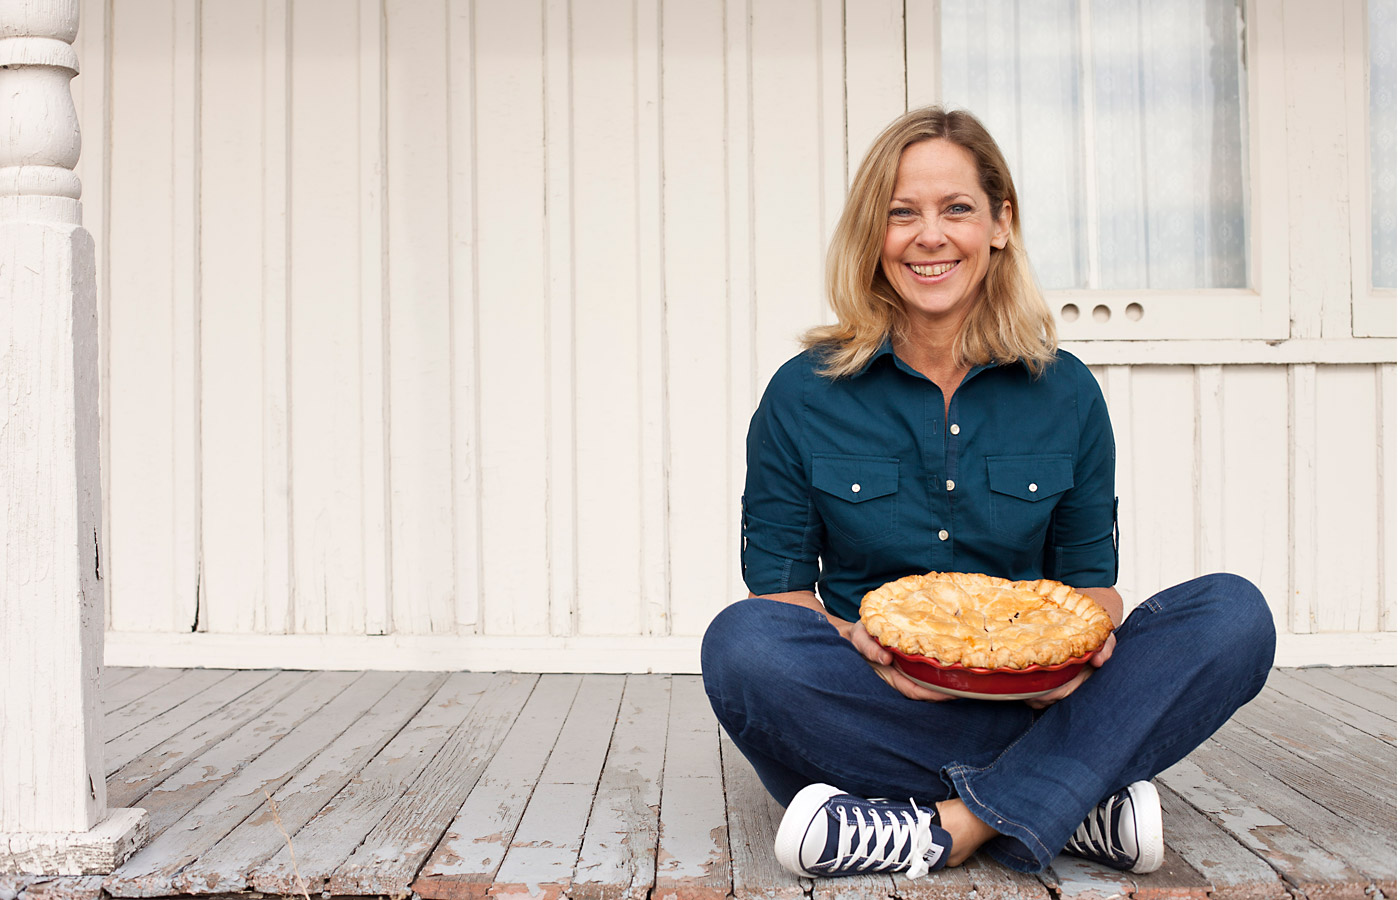 Beth howard, the pie lady